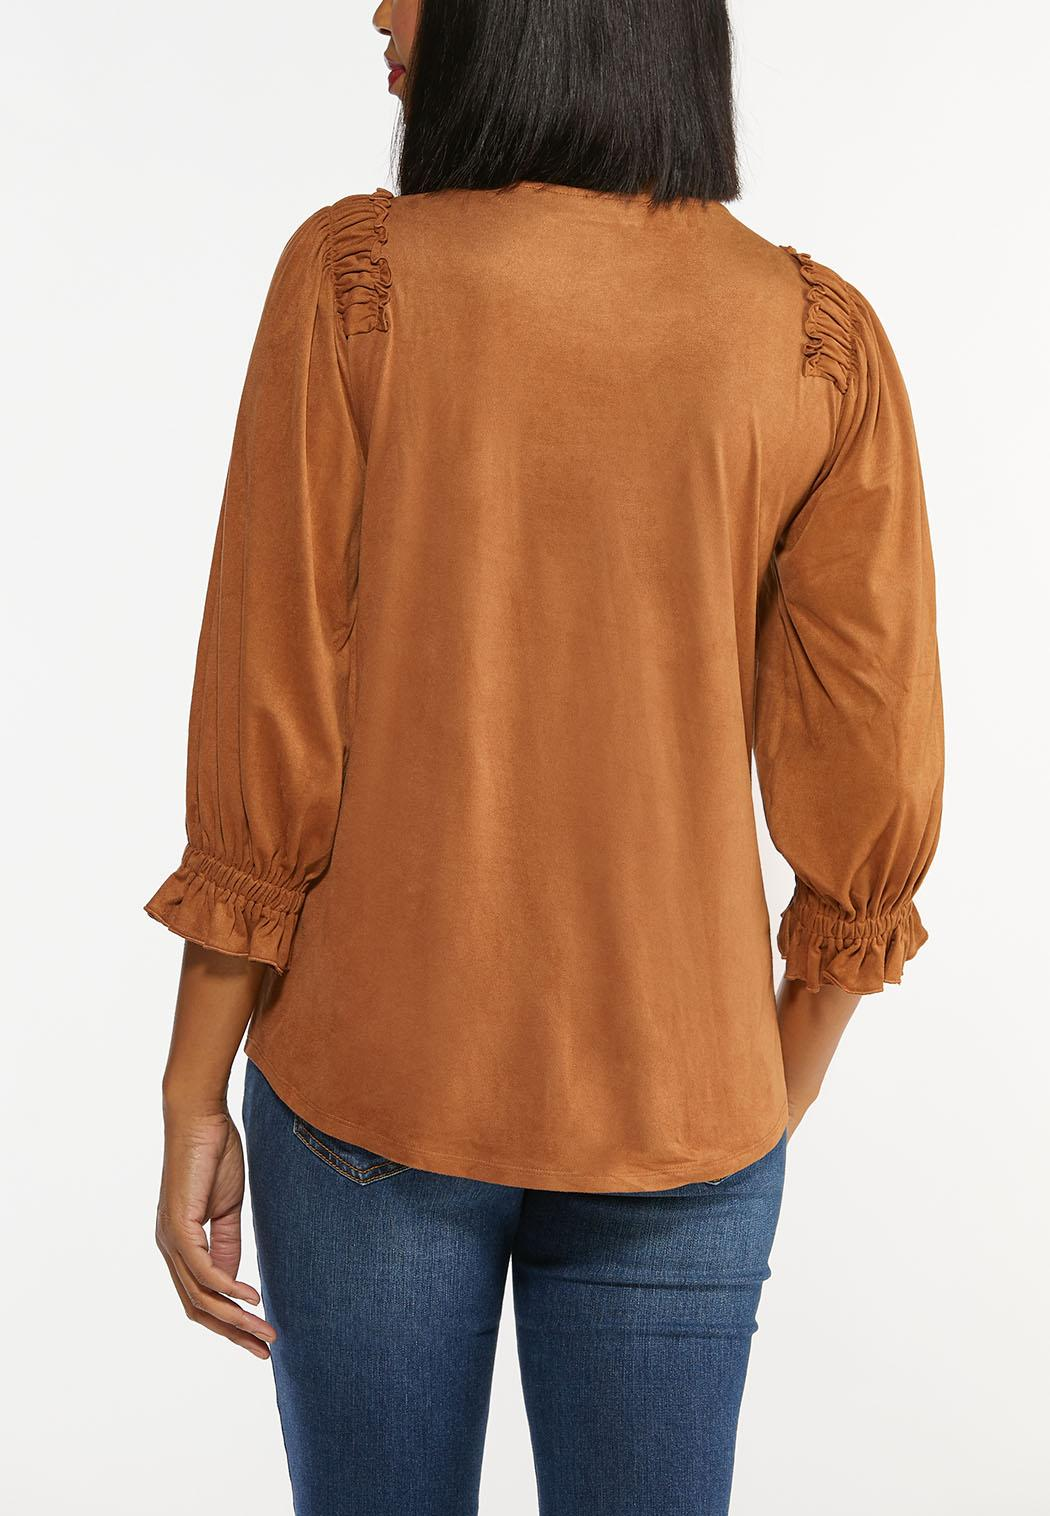 Plus Size Faux Suede Ruffled Top (Item #44452776)